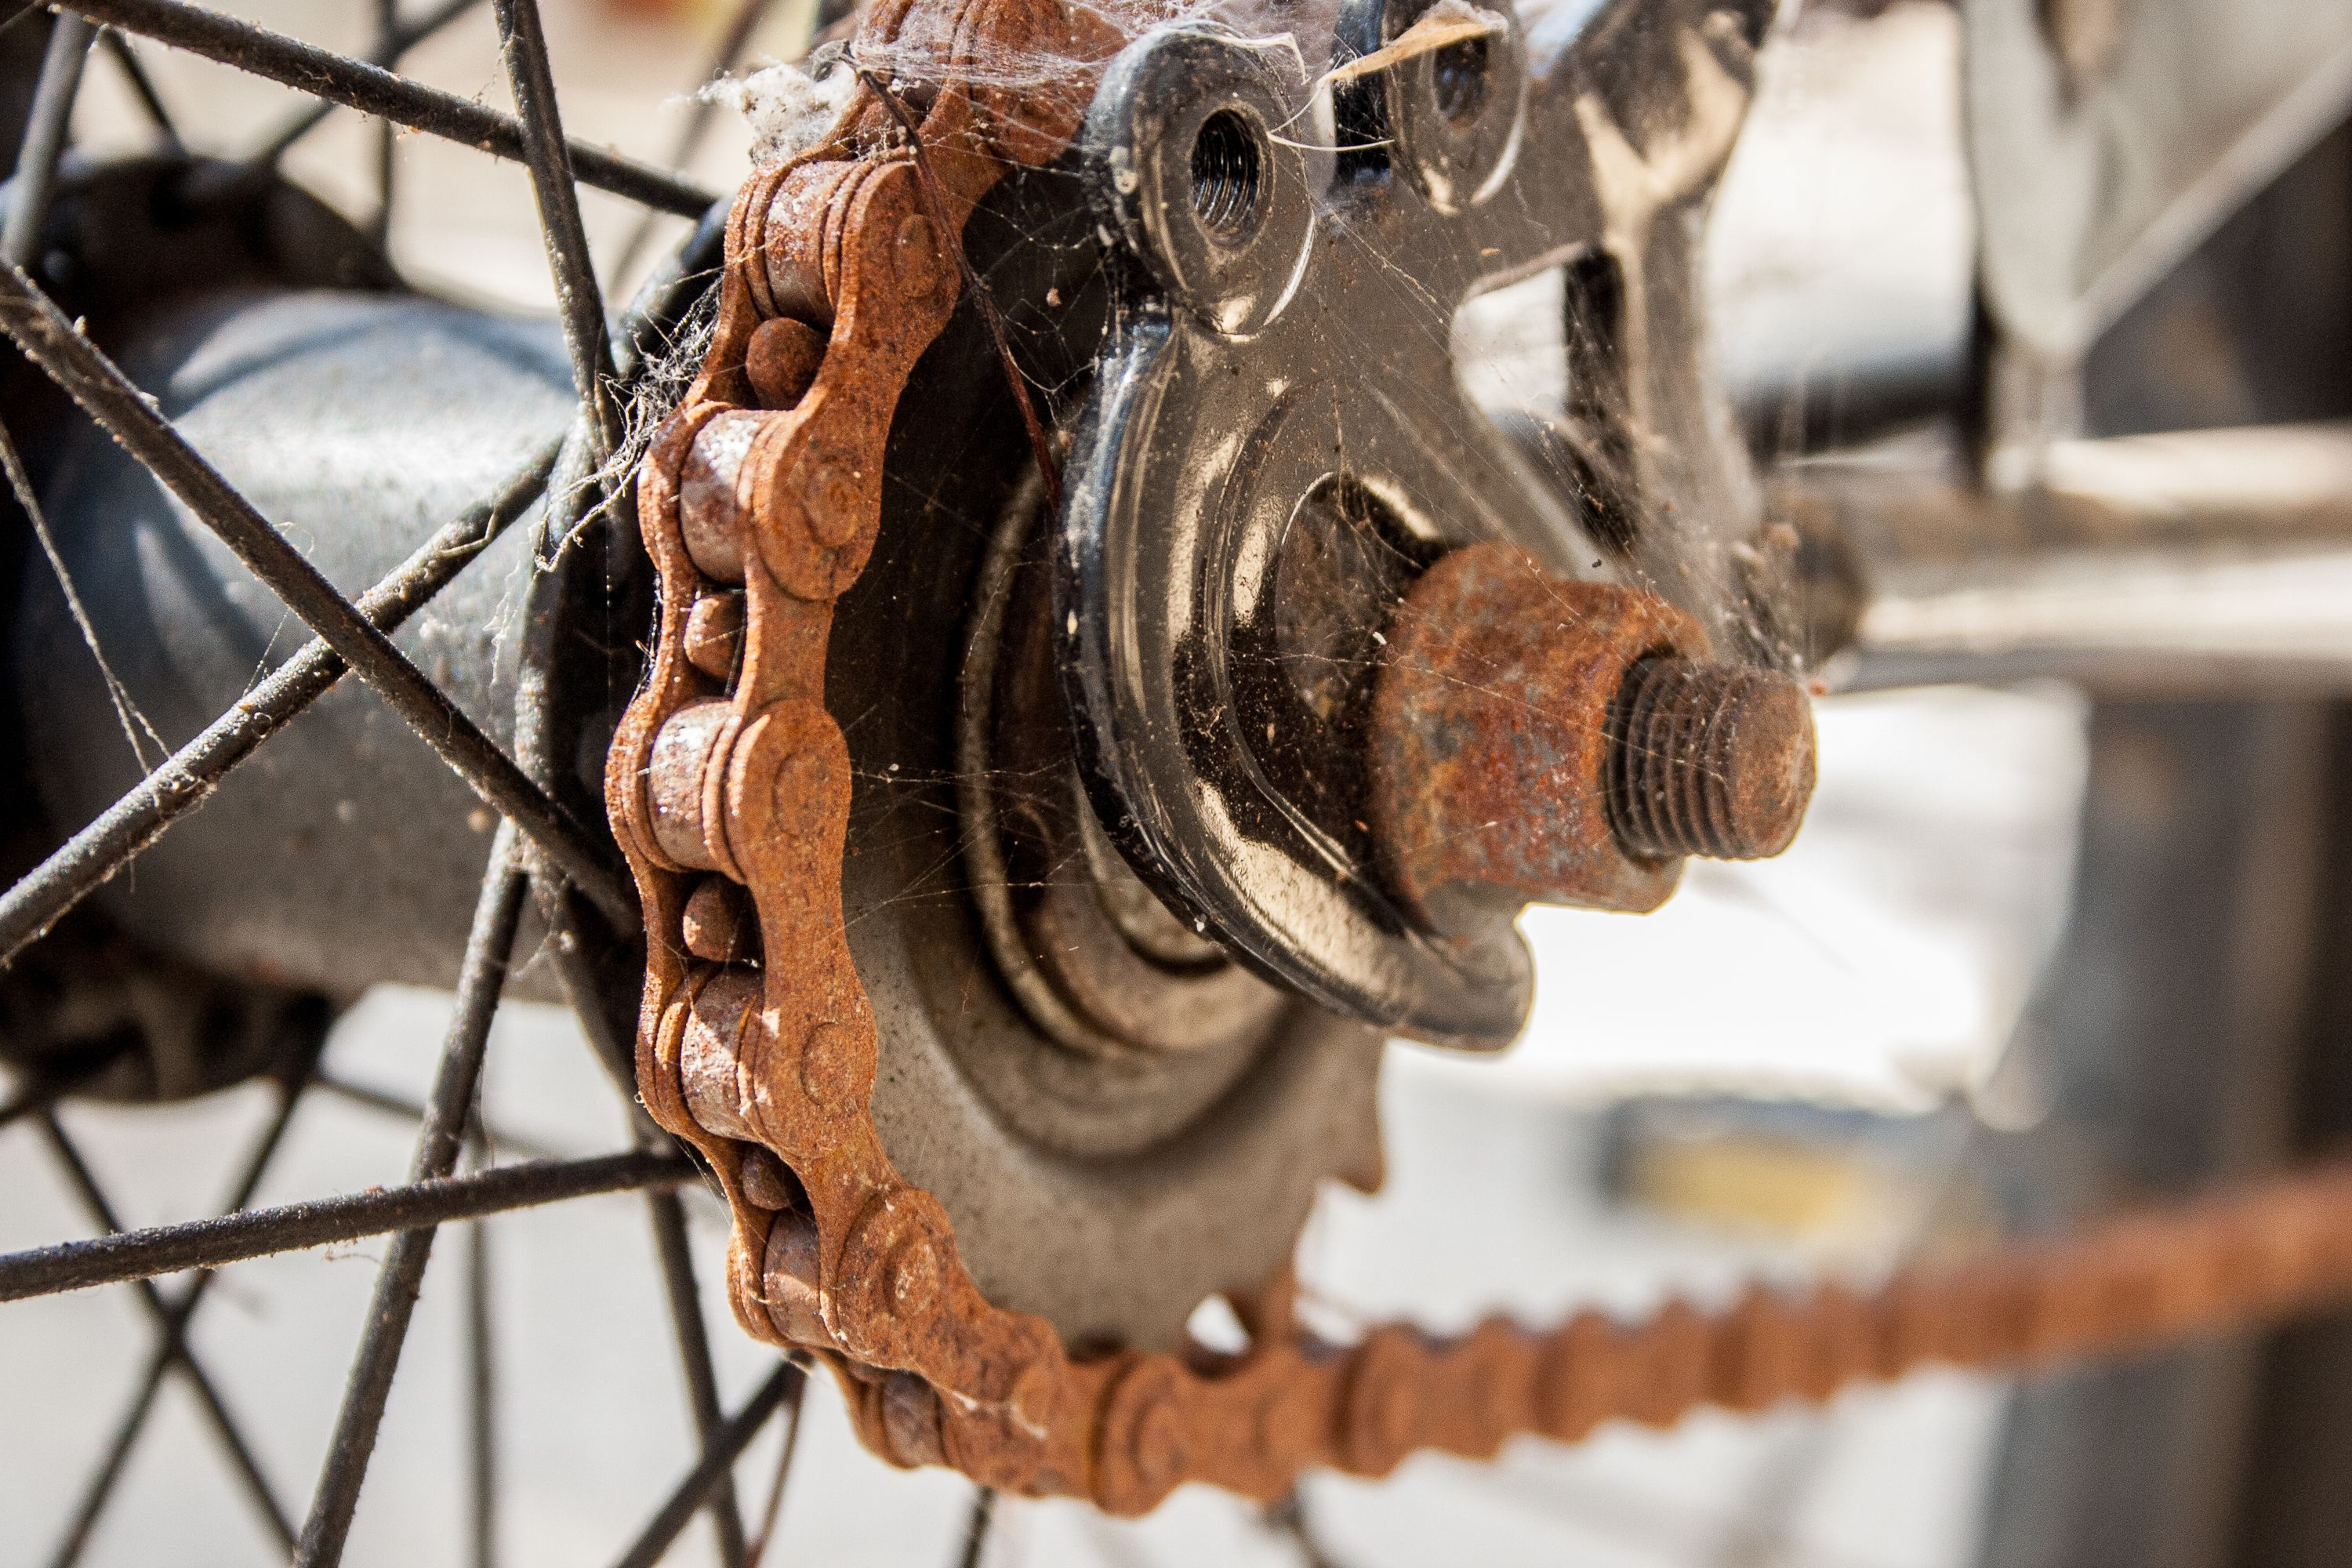 How To Remove Rust From A Bike Chain How To Remove Rust Cleaning Hacks House Cleaning Tips